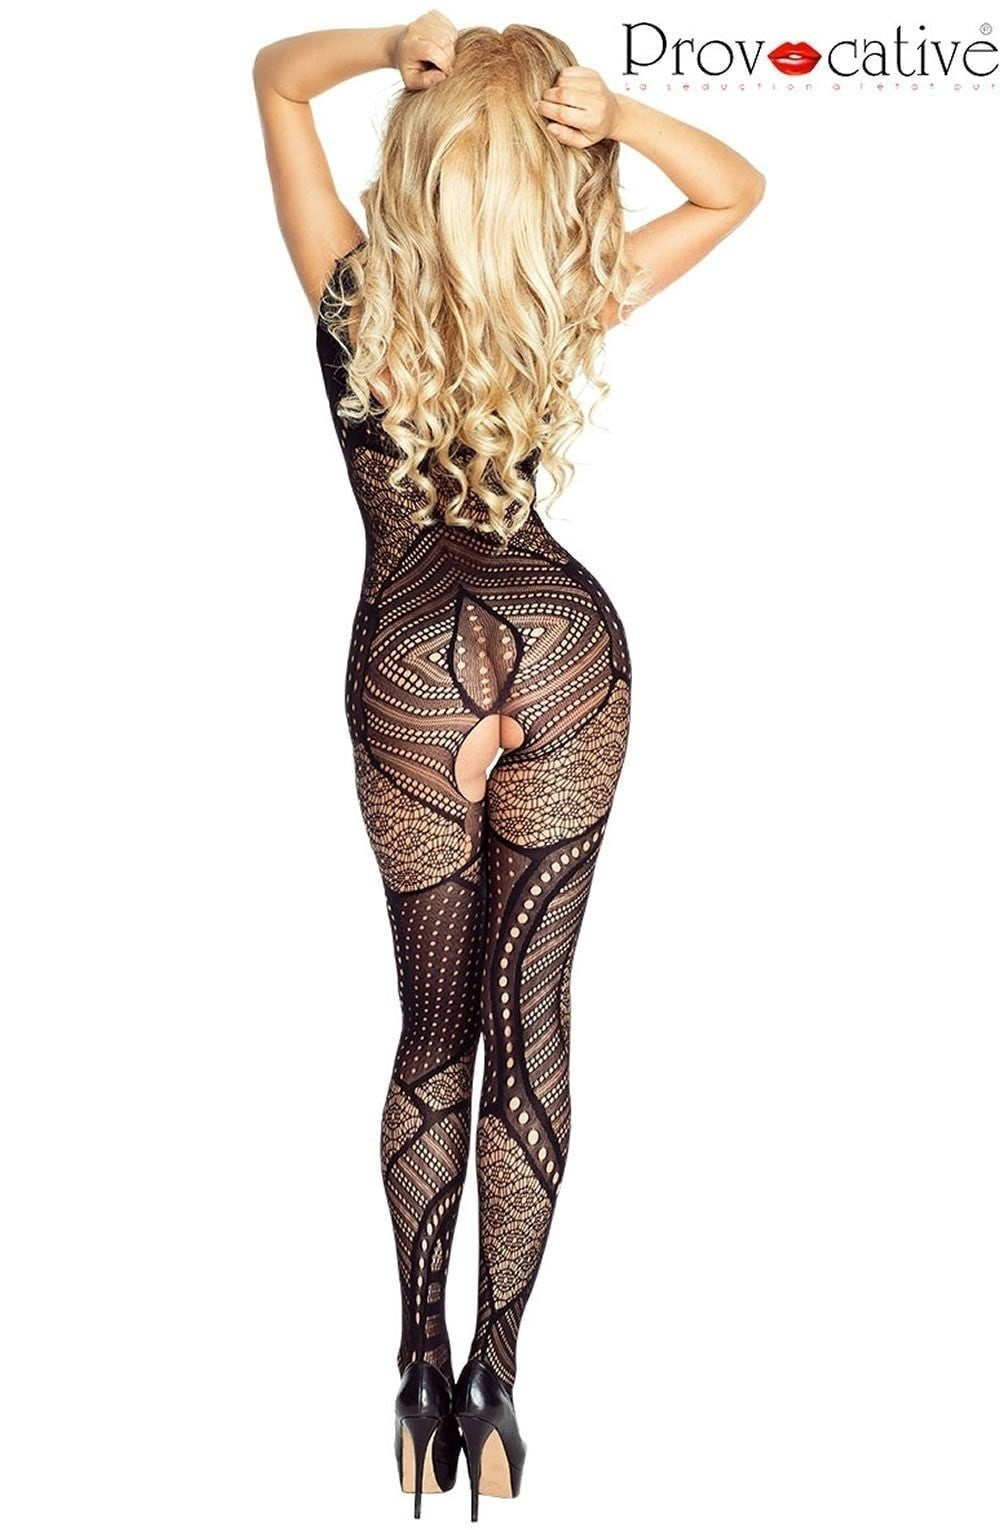 Gabriella In Black Fishnet Body Stocking